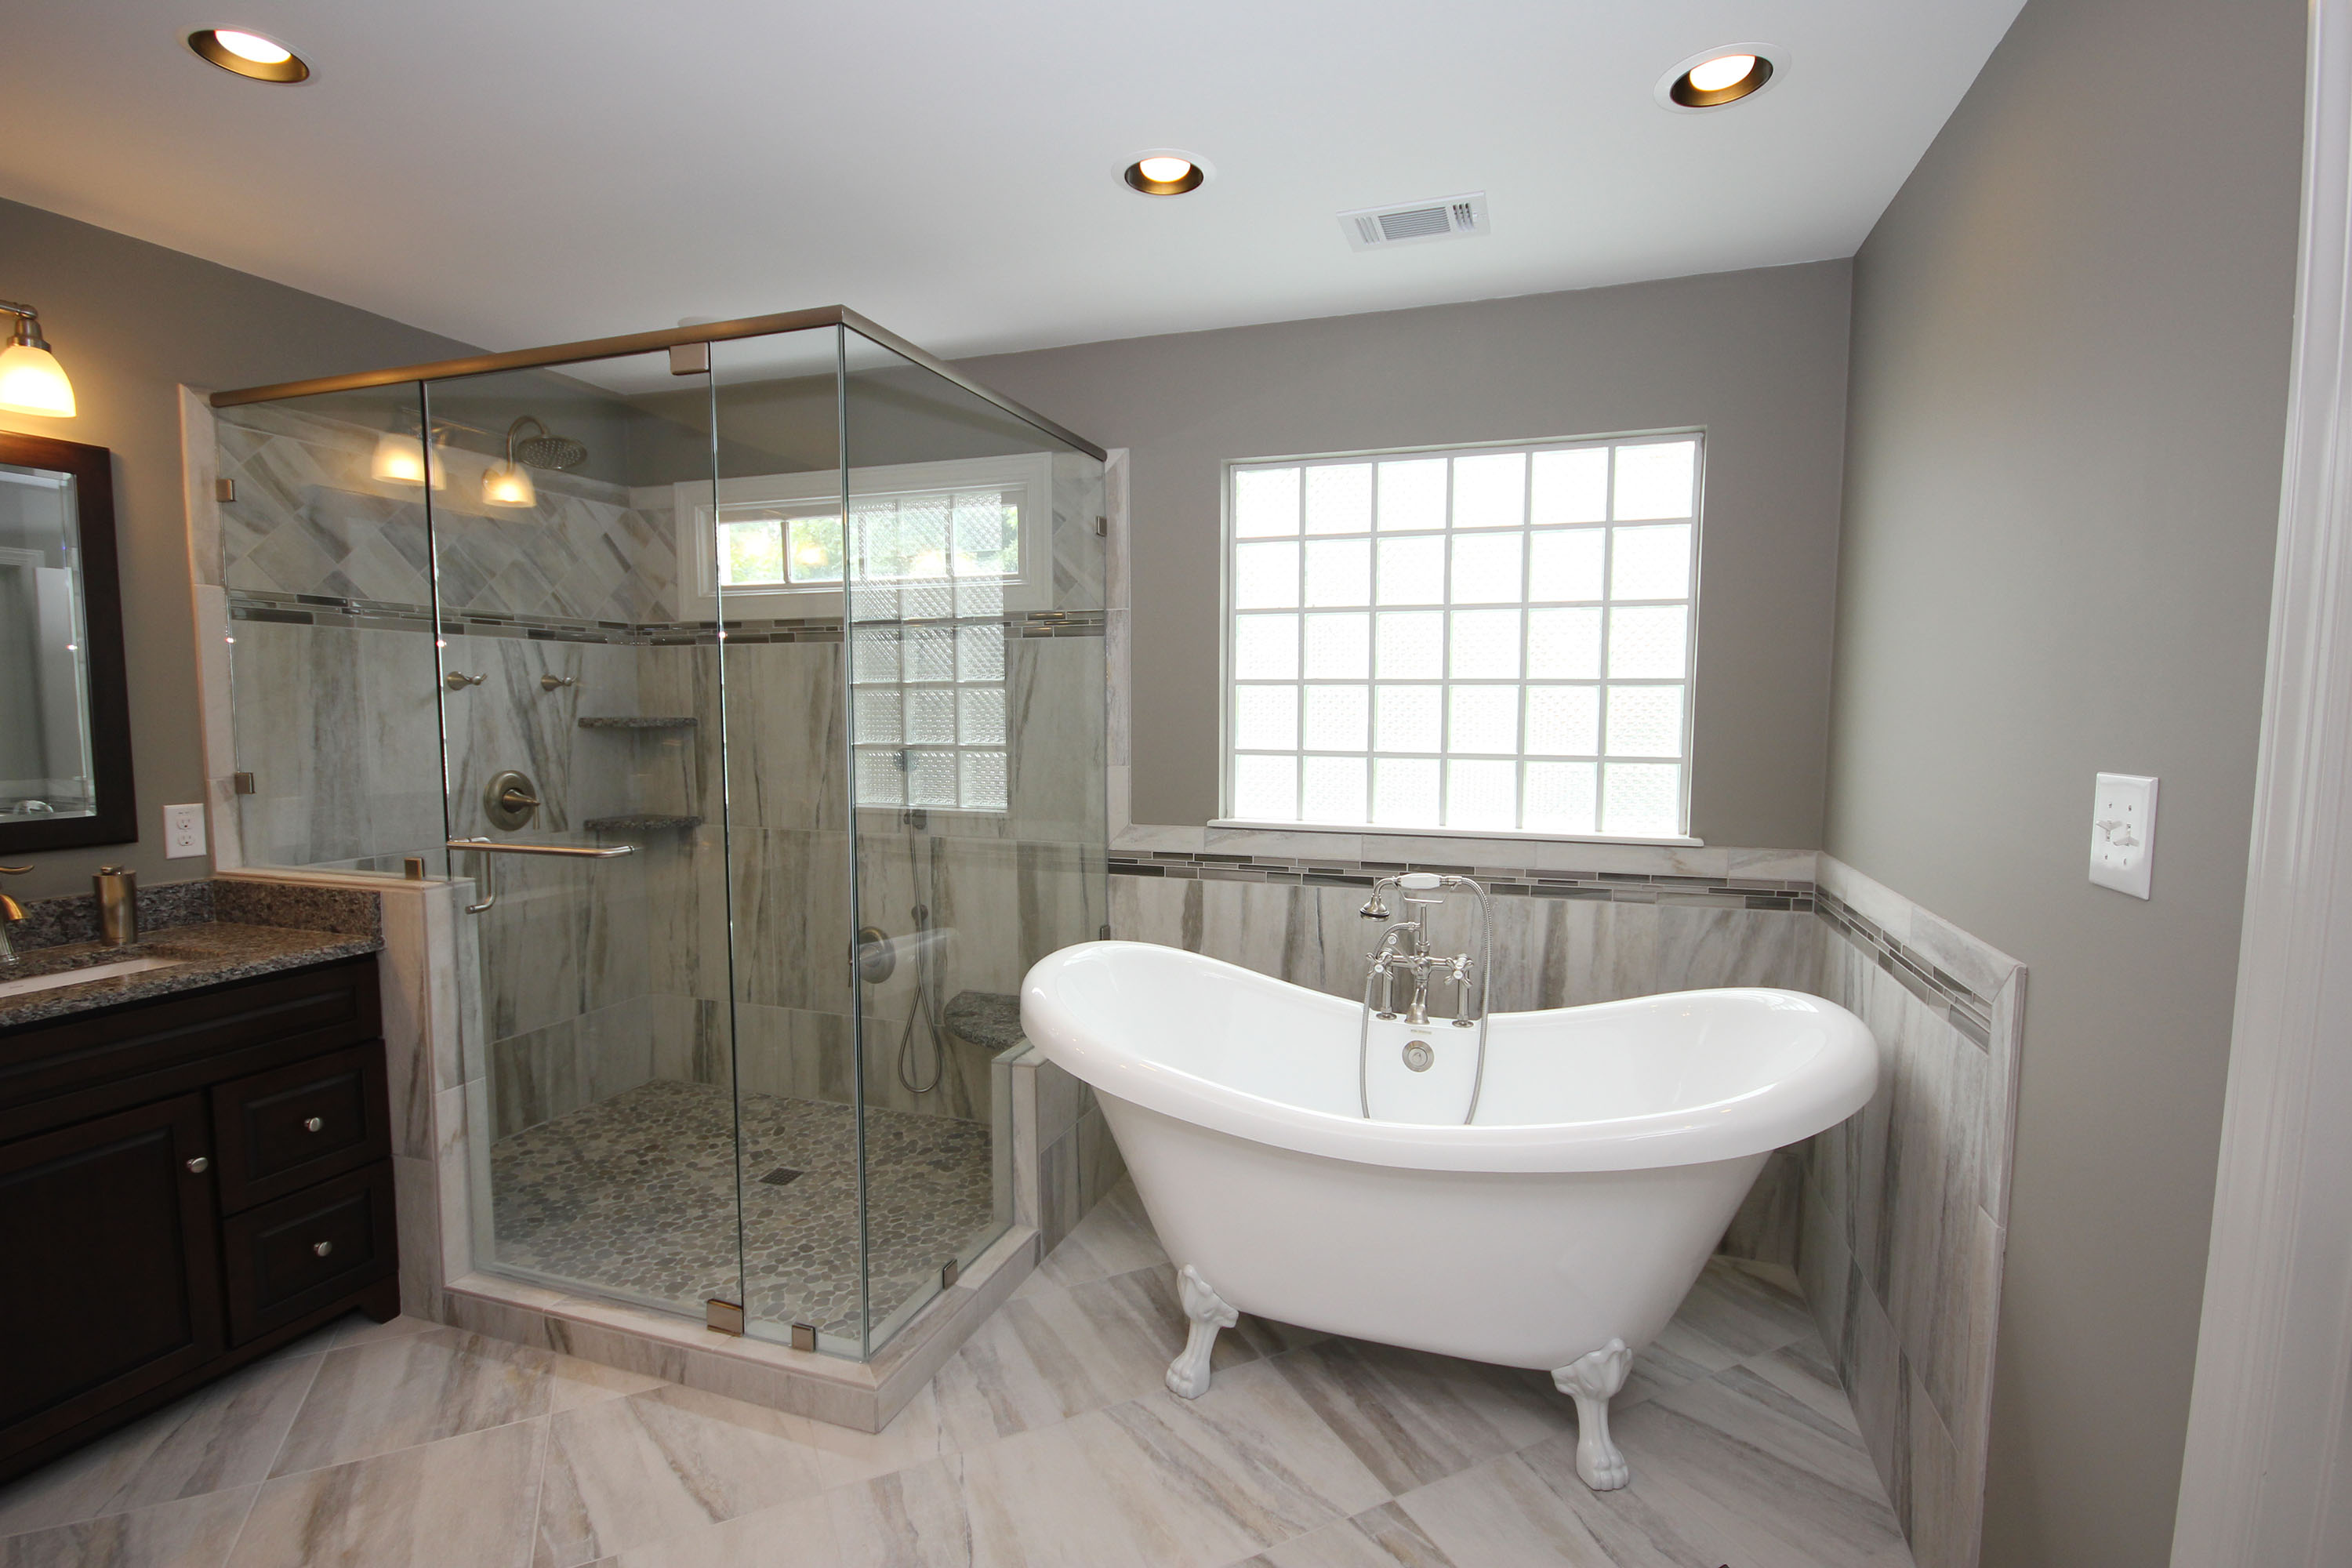 Freestanding bathtubs by cary bathroom remodeling - Small bathroom remodel with tub ...